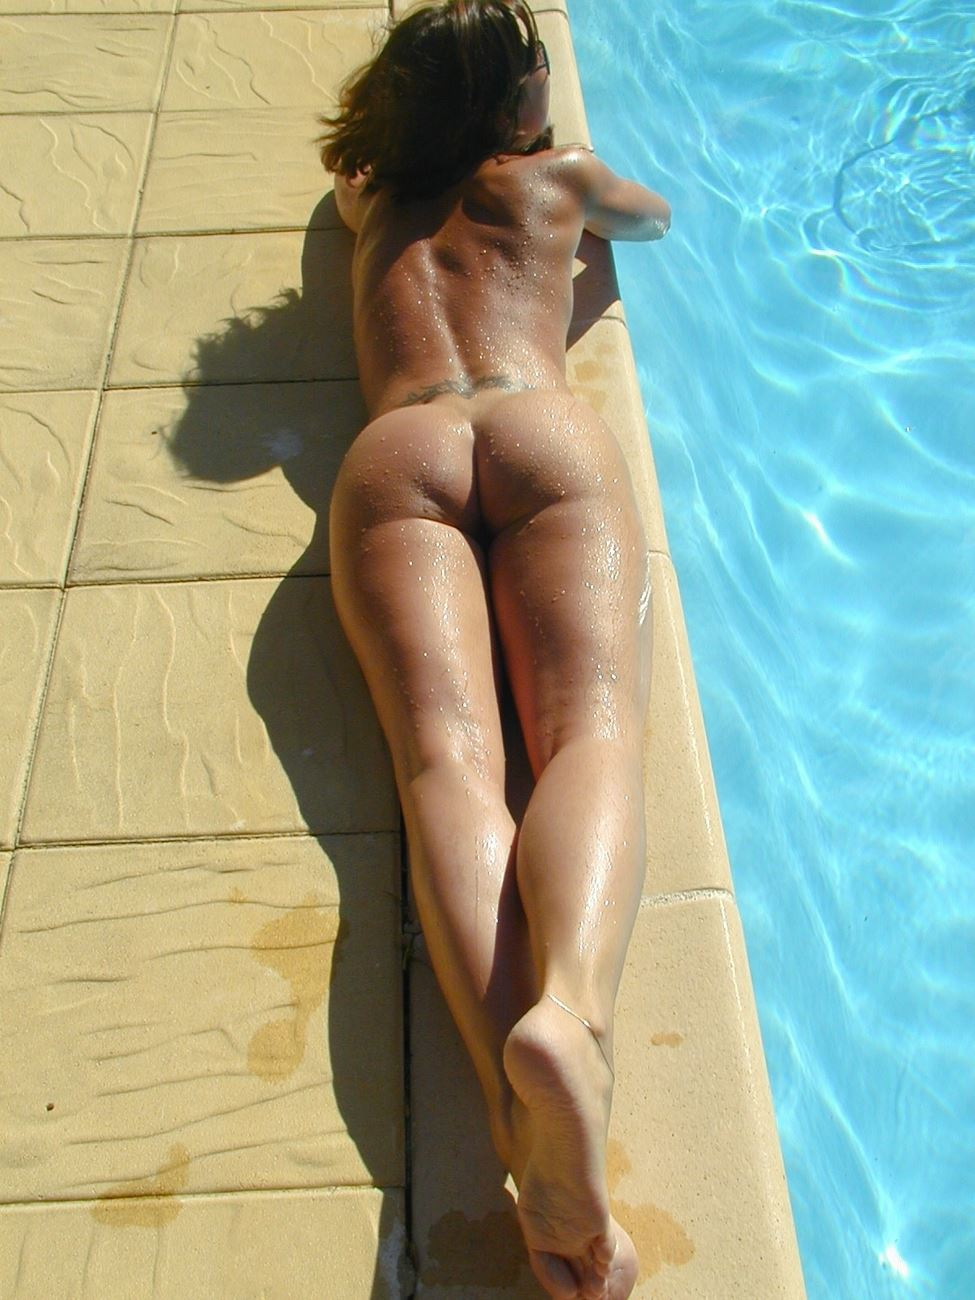 Naked Amateur Teen Skinny Dipping In Swimming Pool  Nude -9024